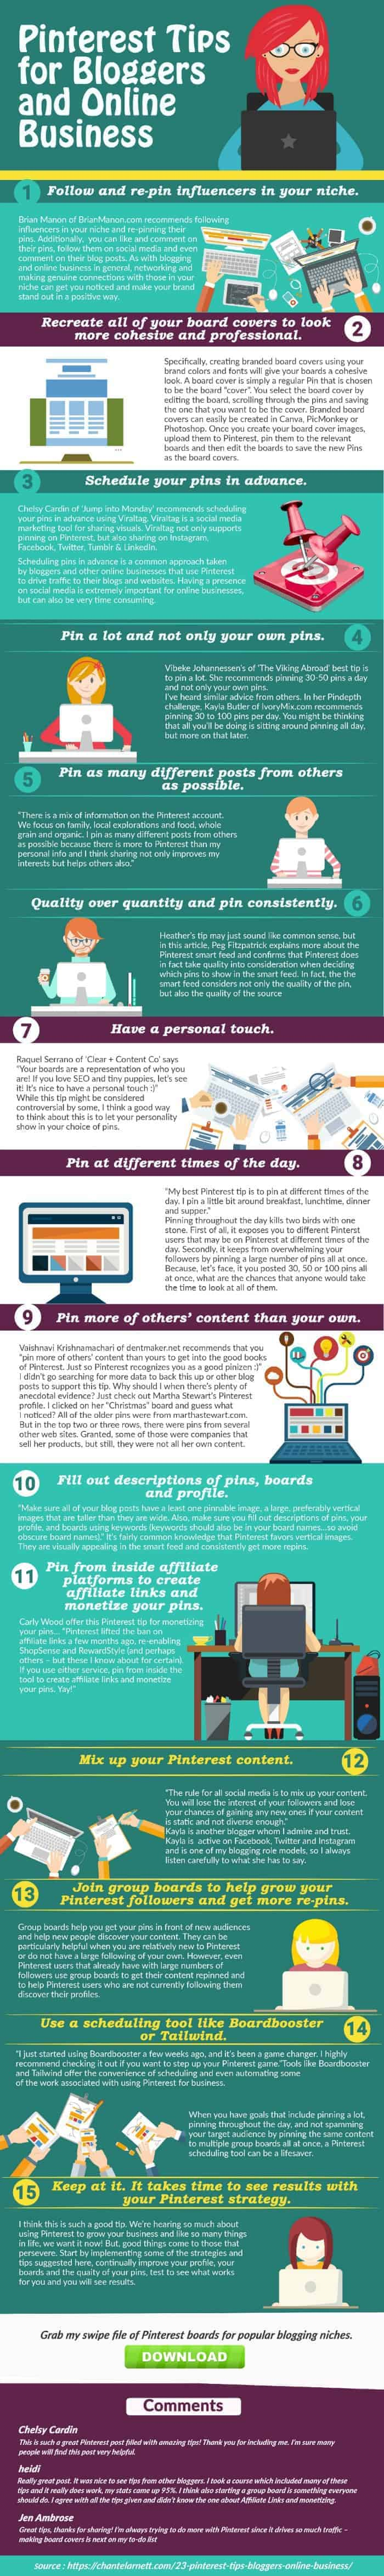 Pinterest_tips_infographic